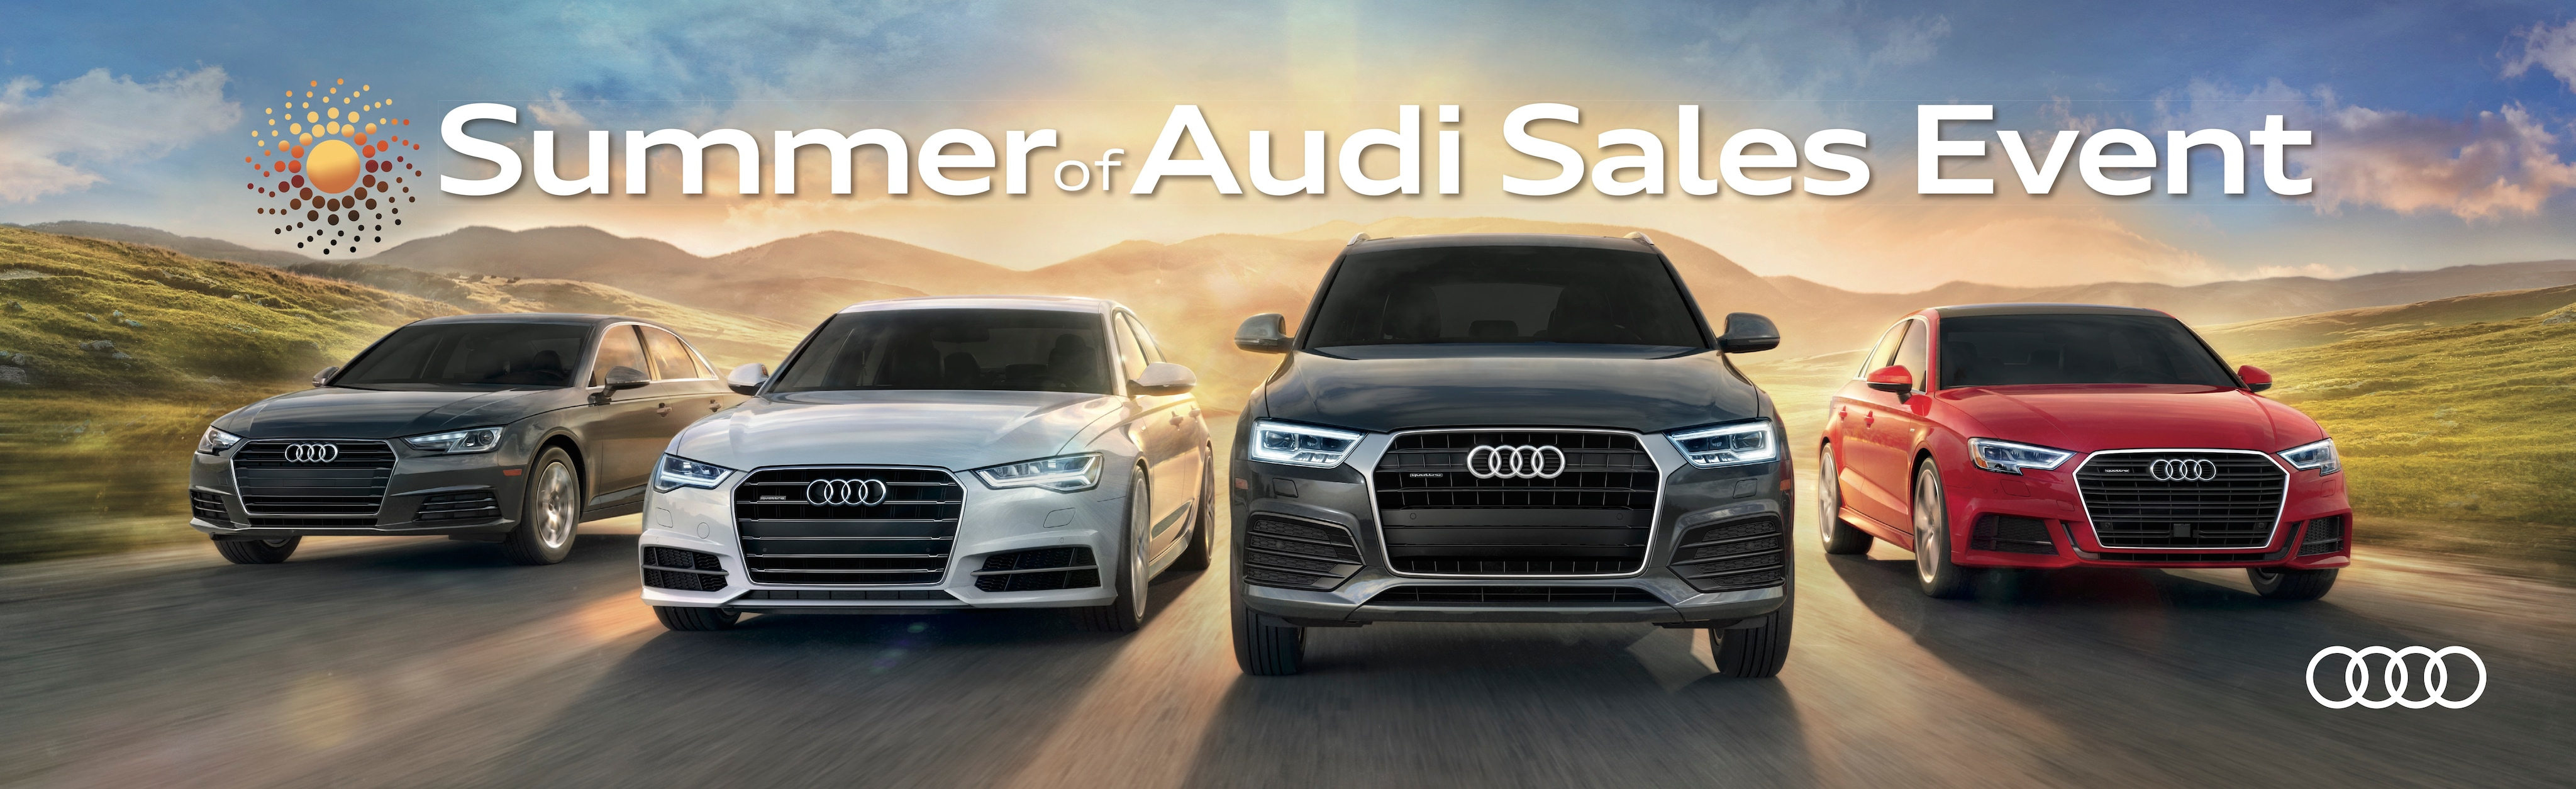 a price debut lasers and news audi sales tag has foot event big massagers reveal